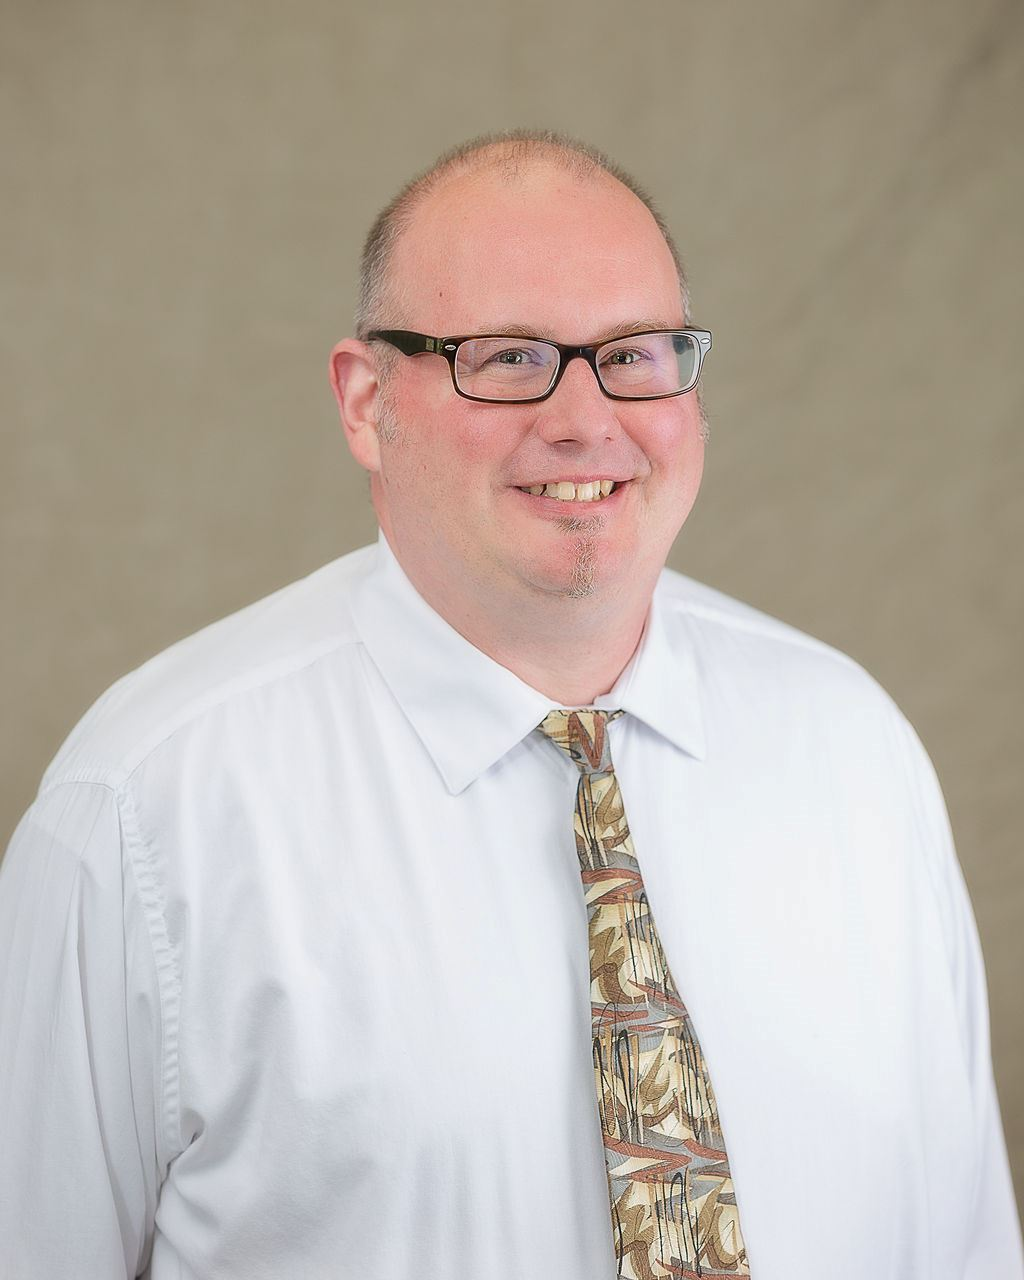 Wade Cramer, LSW Assistant Human Services Director